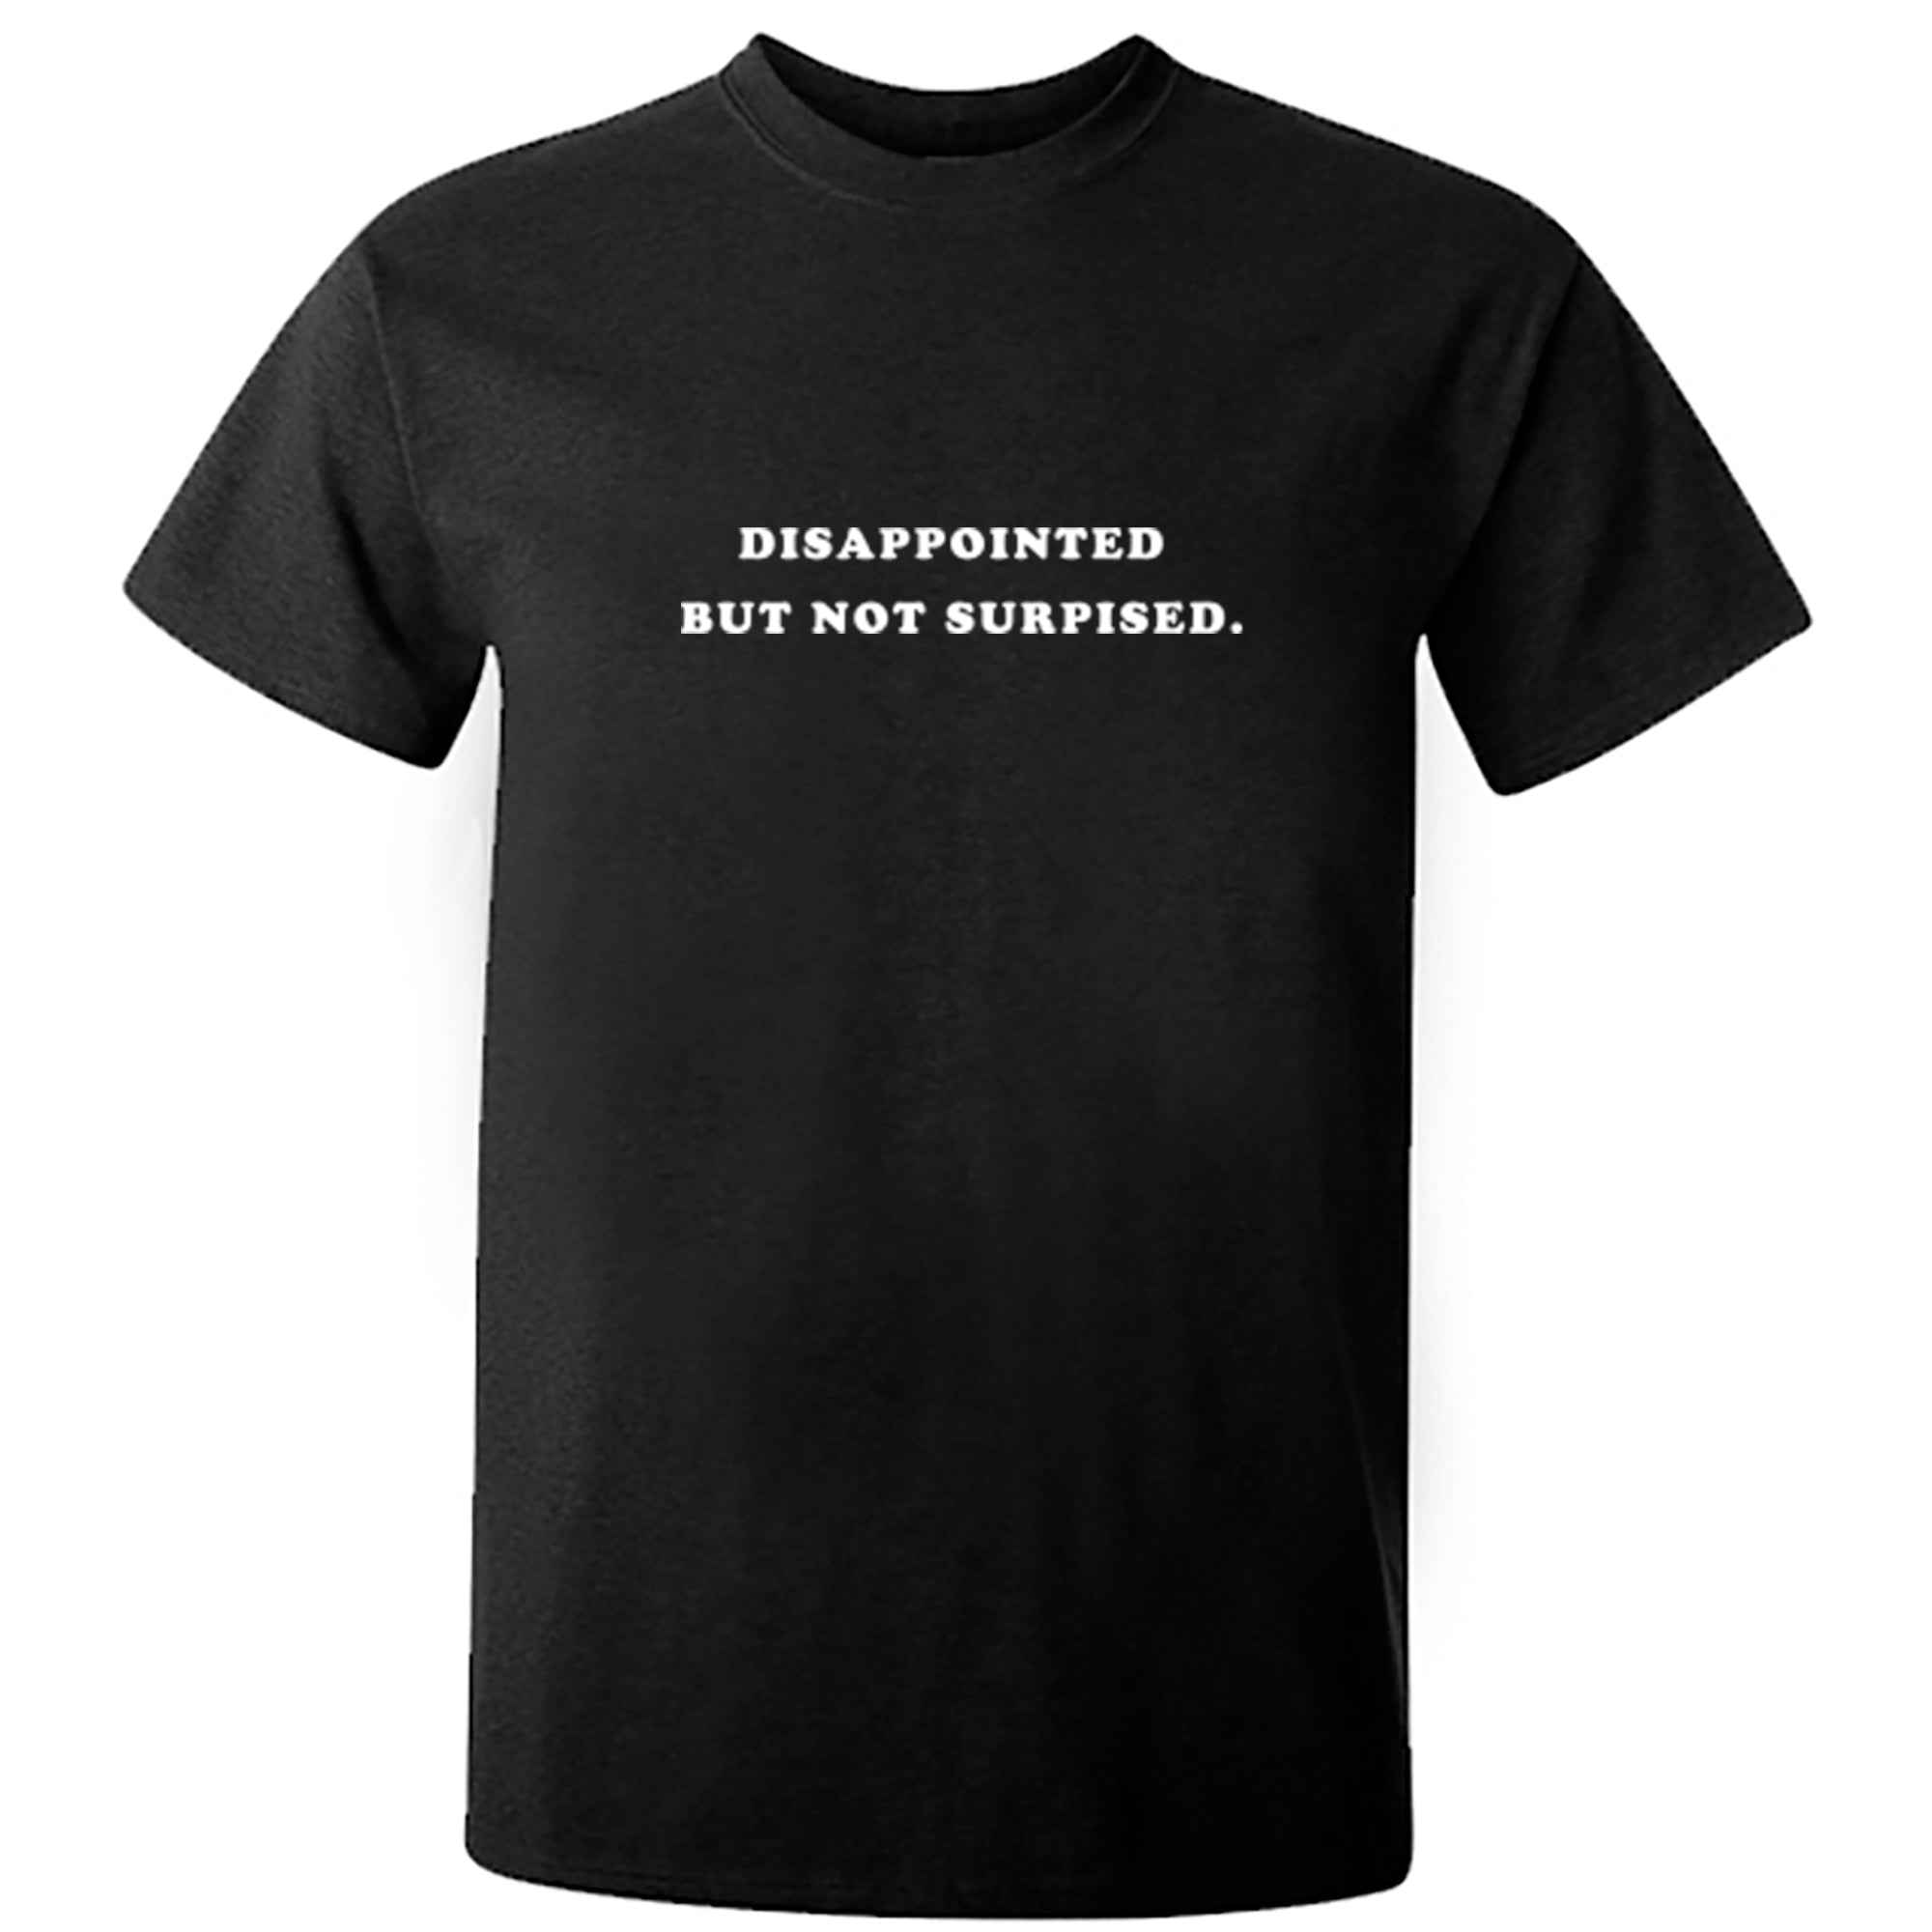 Disappointed But Not Surprised Unisex Fit T-Shirt S1039 - Illustrated Identity Ltd.